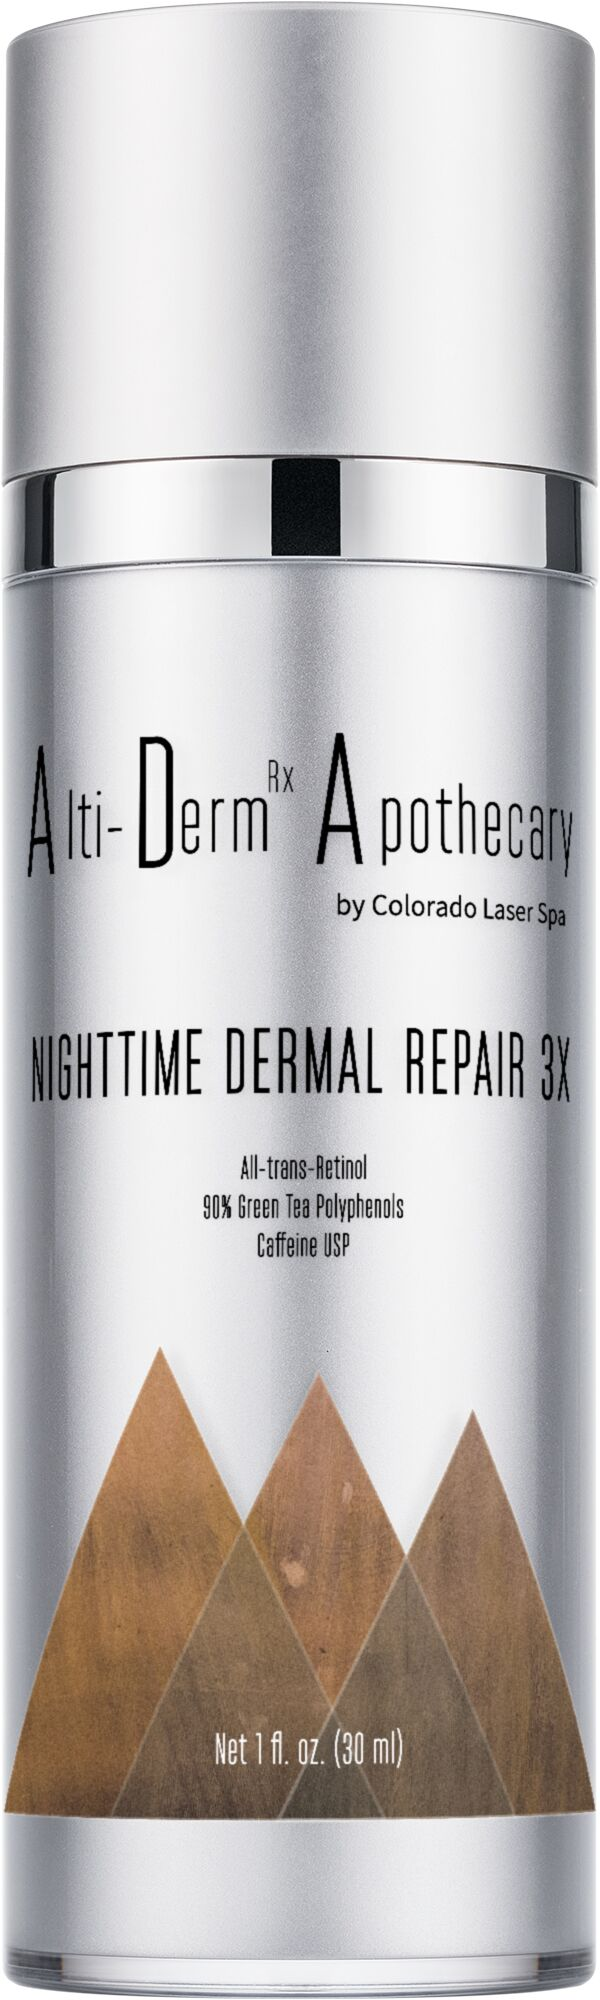 Nighttime Dermal Repair 3x